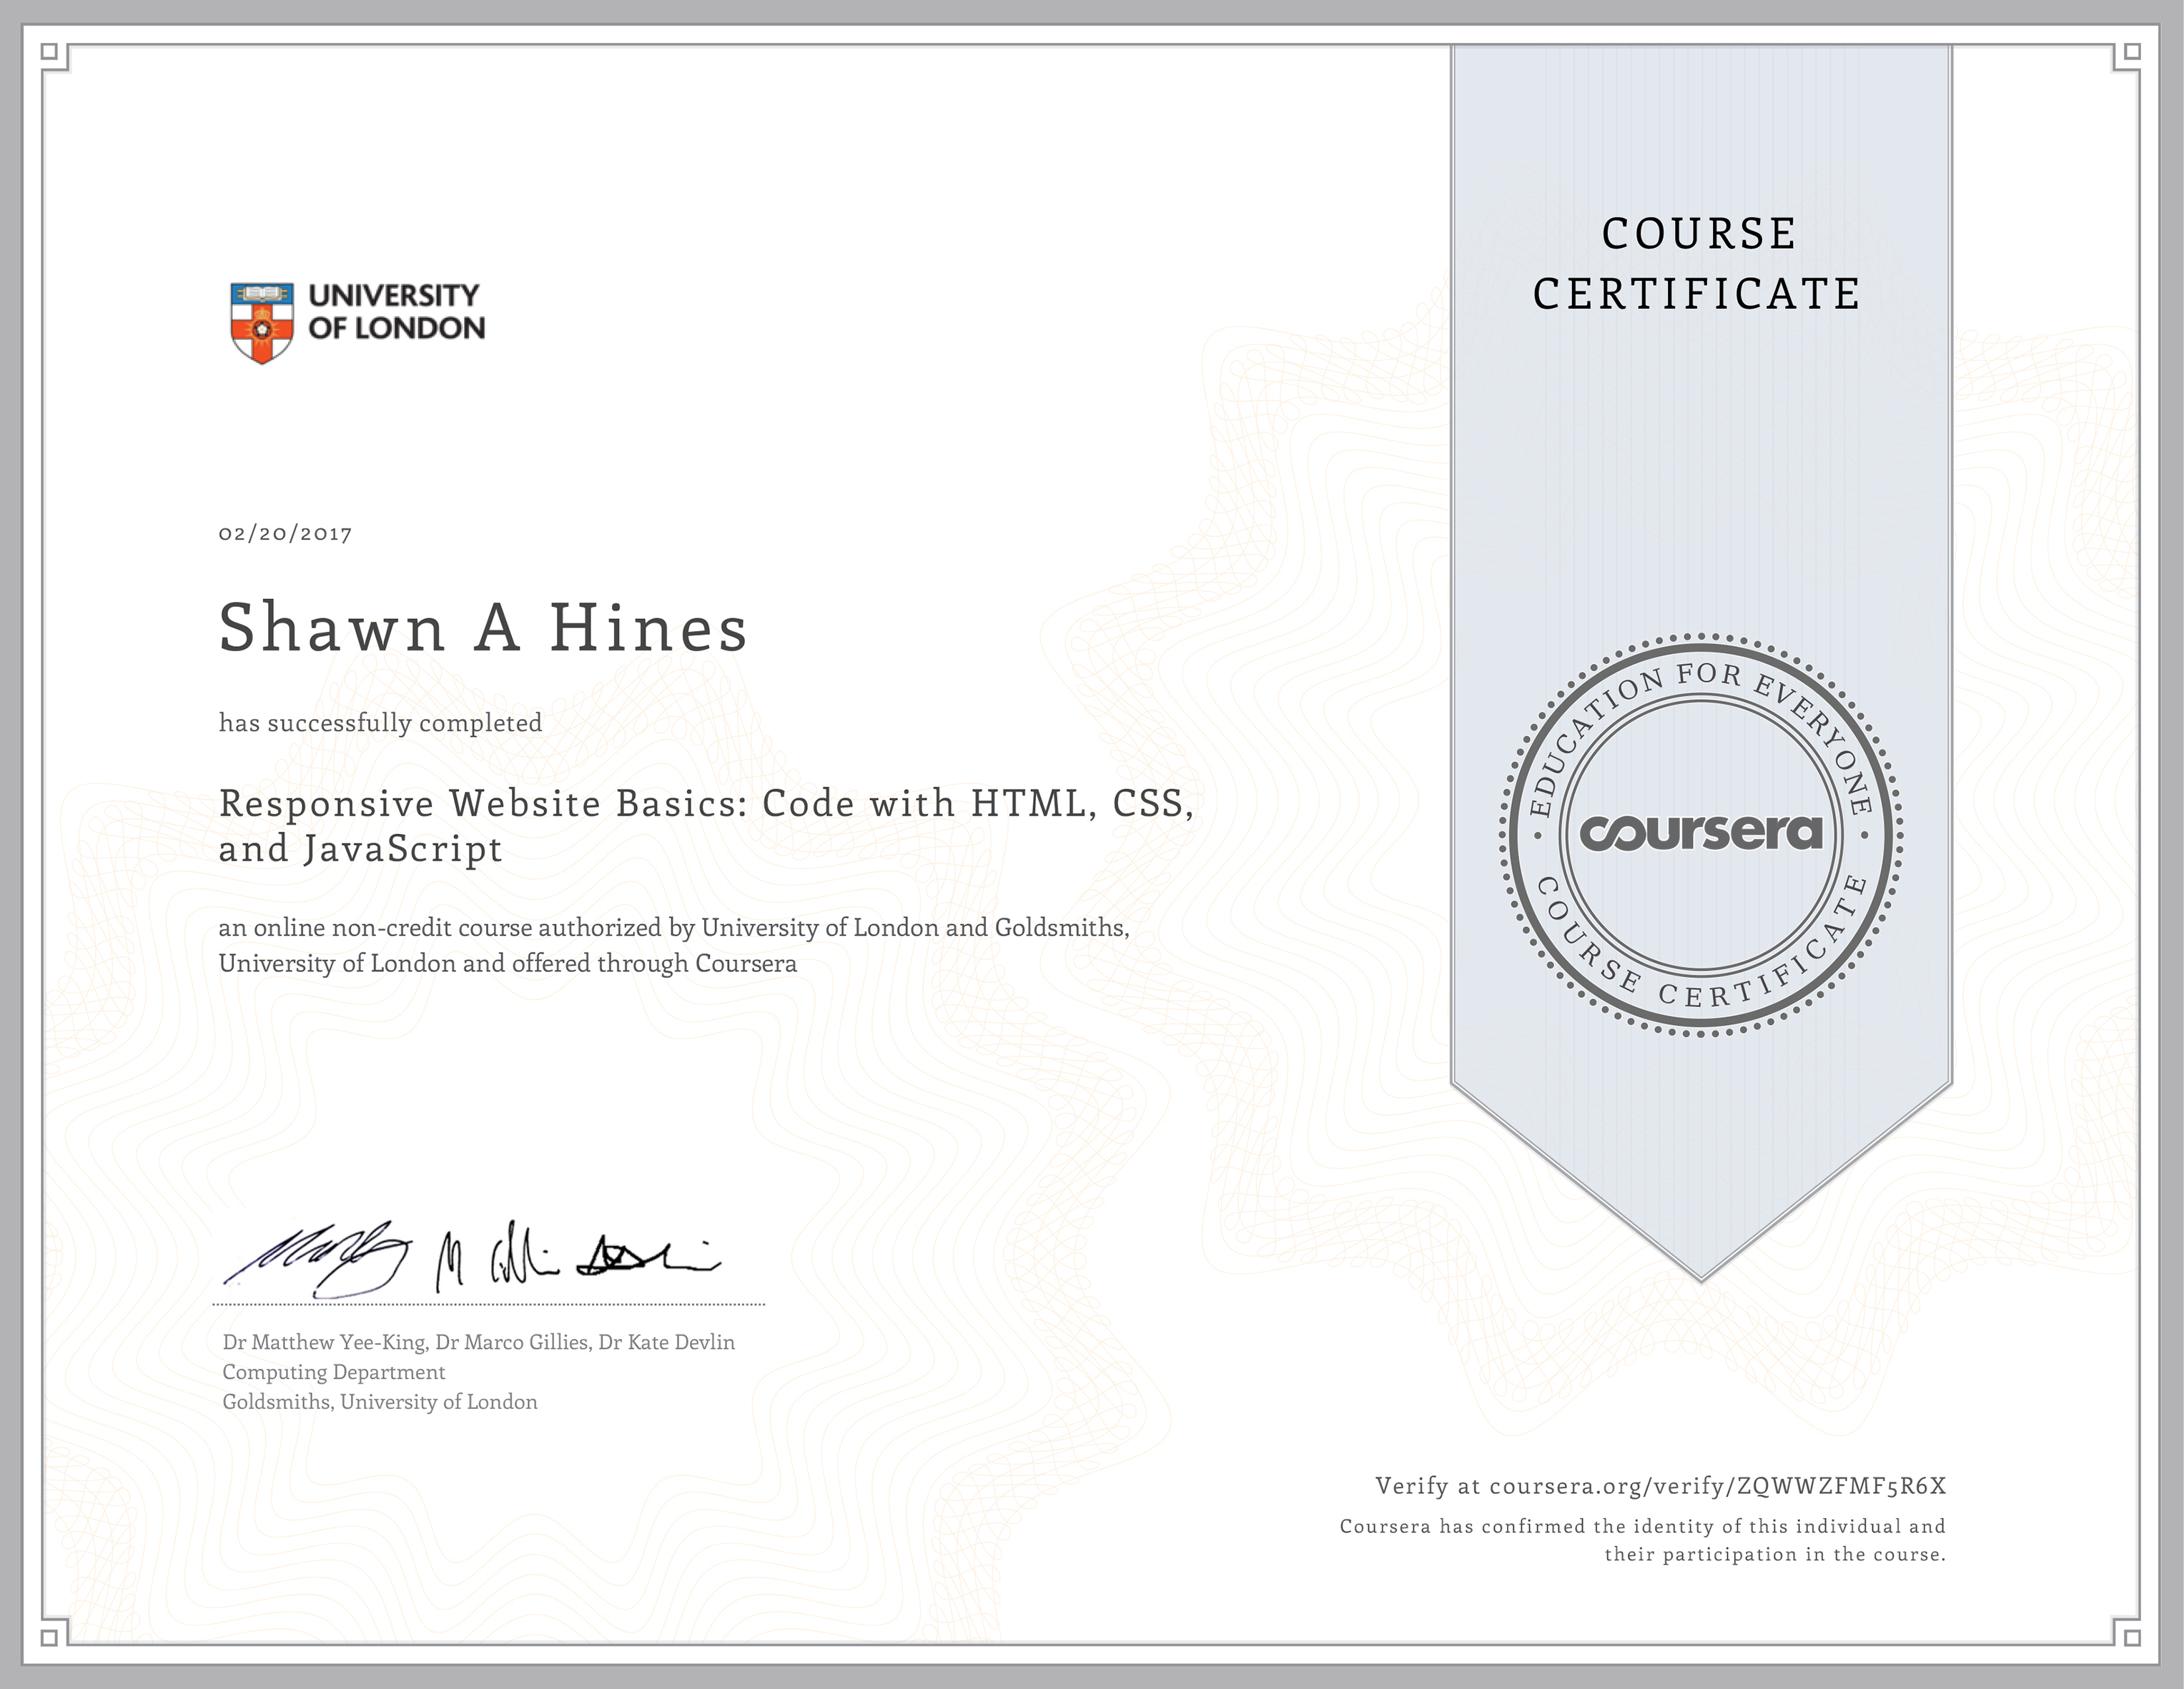 HTML, CSS, and JavaScript - University of London on Coursera